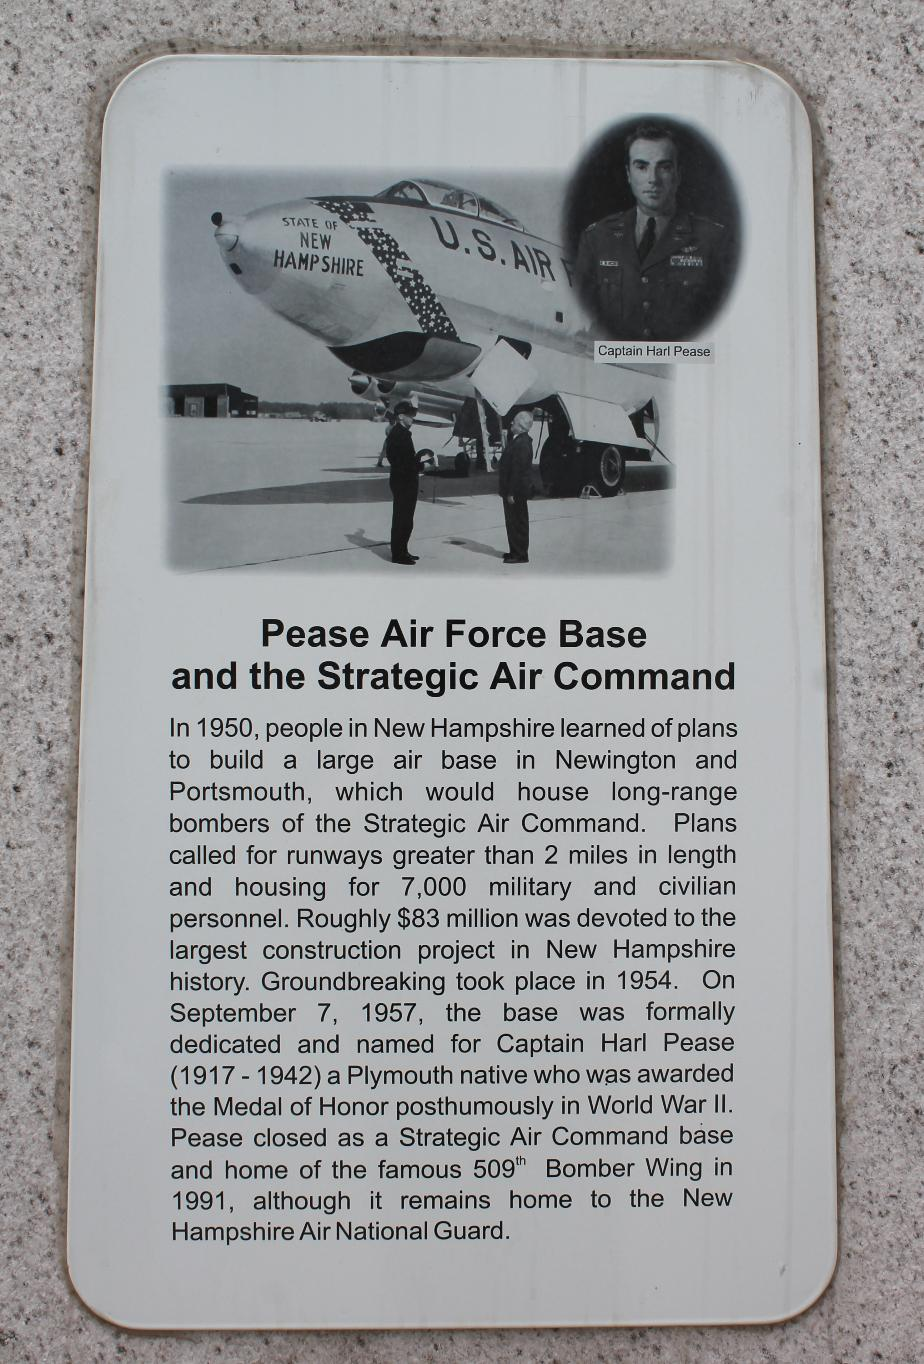 NH State Veterans Cemetery - Pease Air Force Base & The Strategic Air Command